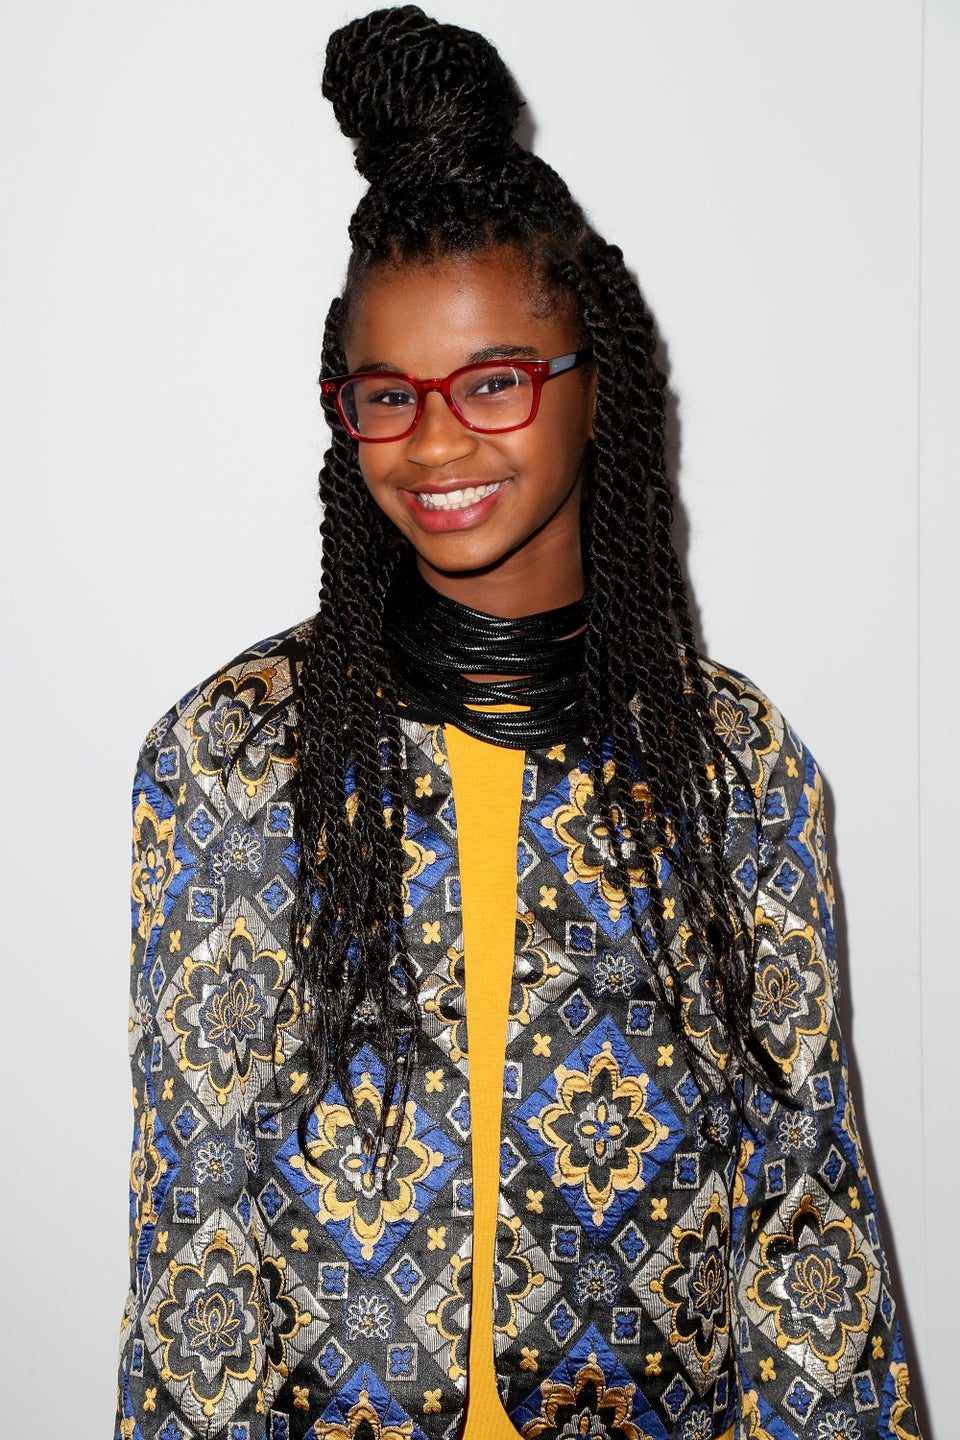 12-Year-Old Marley Dias Signs Book Deal To Write Kids Activism Guide